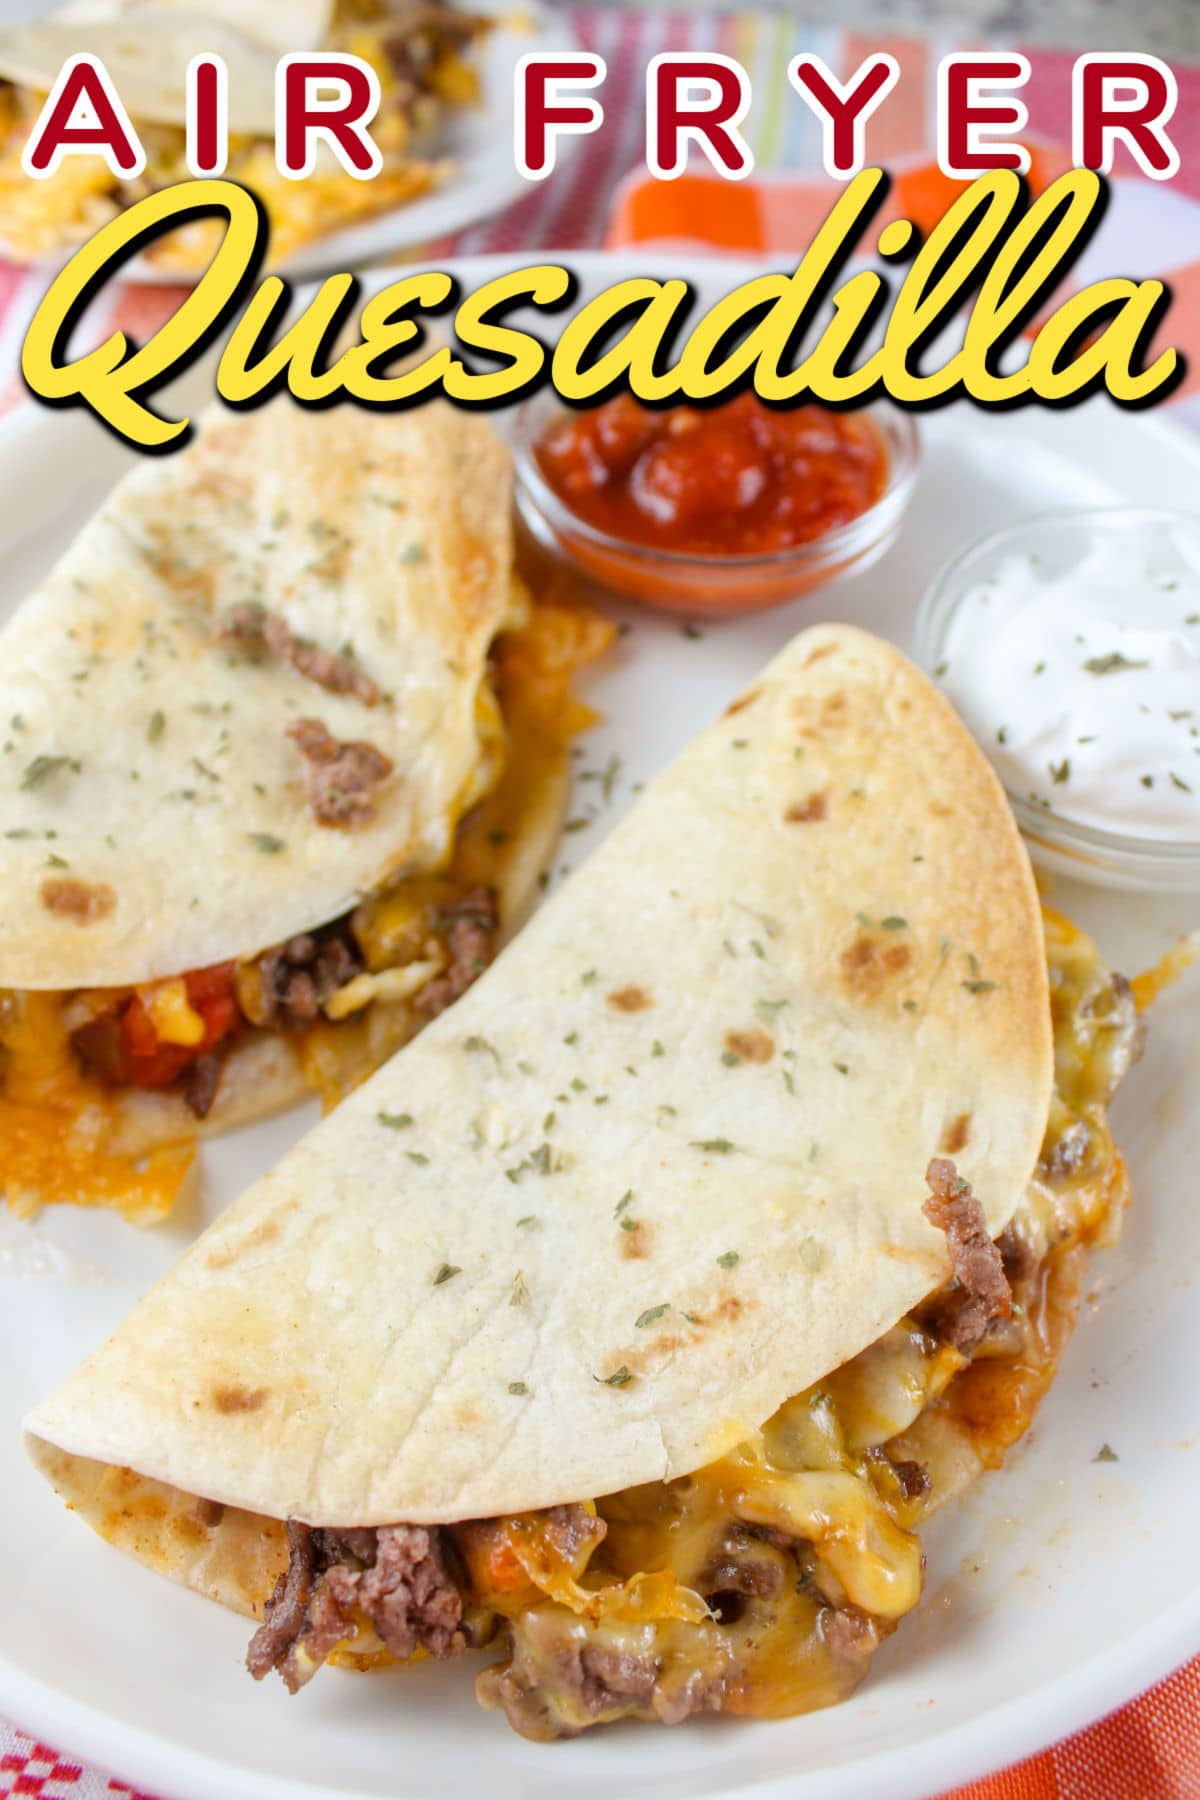 Air Fryer Quesadillas are a super quick and easy weeknight meal or a fun snack anytime! You can have three quesadillas on the table in ten minutes - and everybody can customize theirs so it's exactly what they want.  via @foodhussy